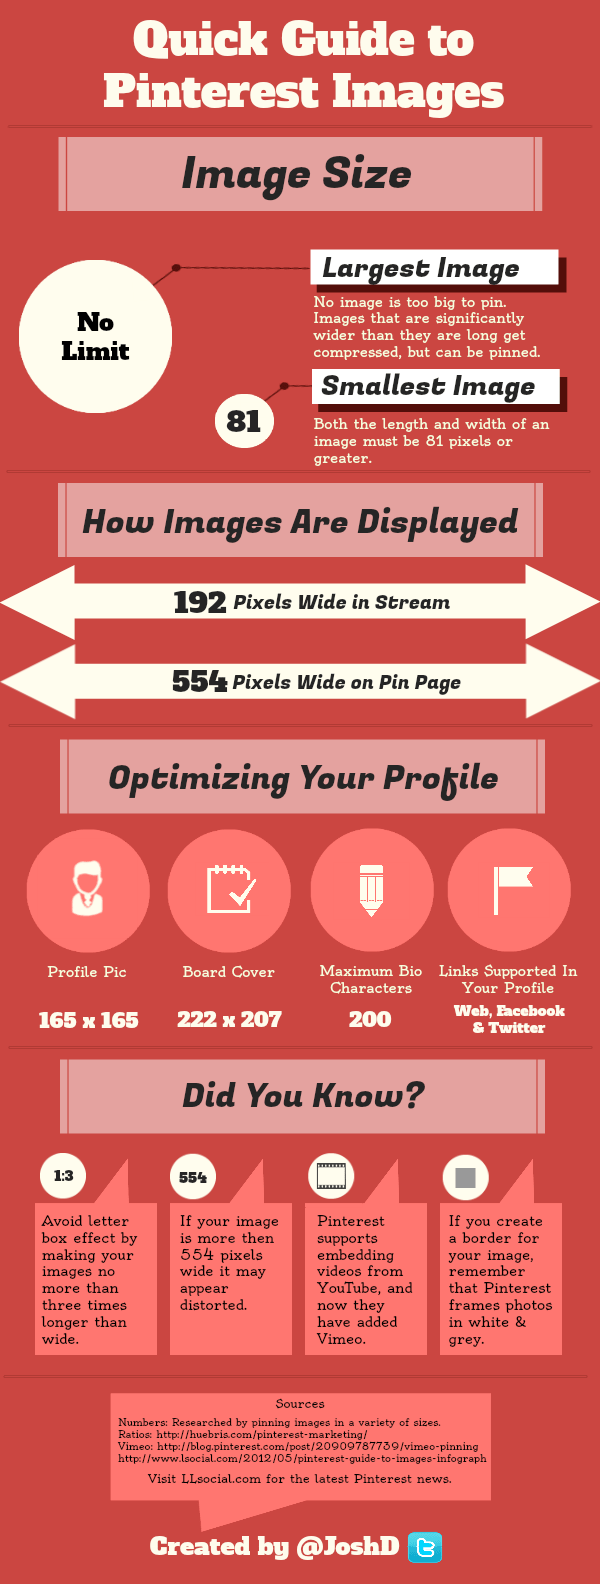 quick-guide-to-pinterest-images